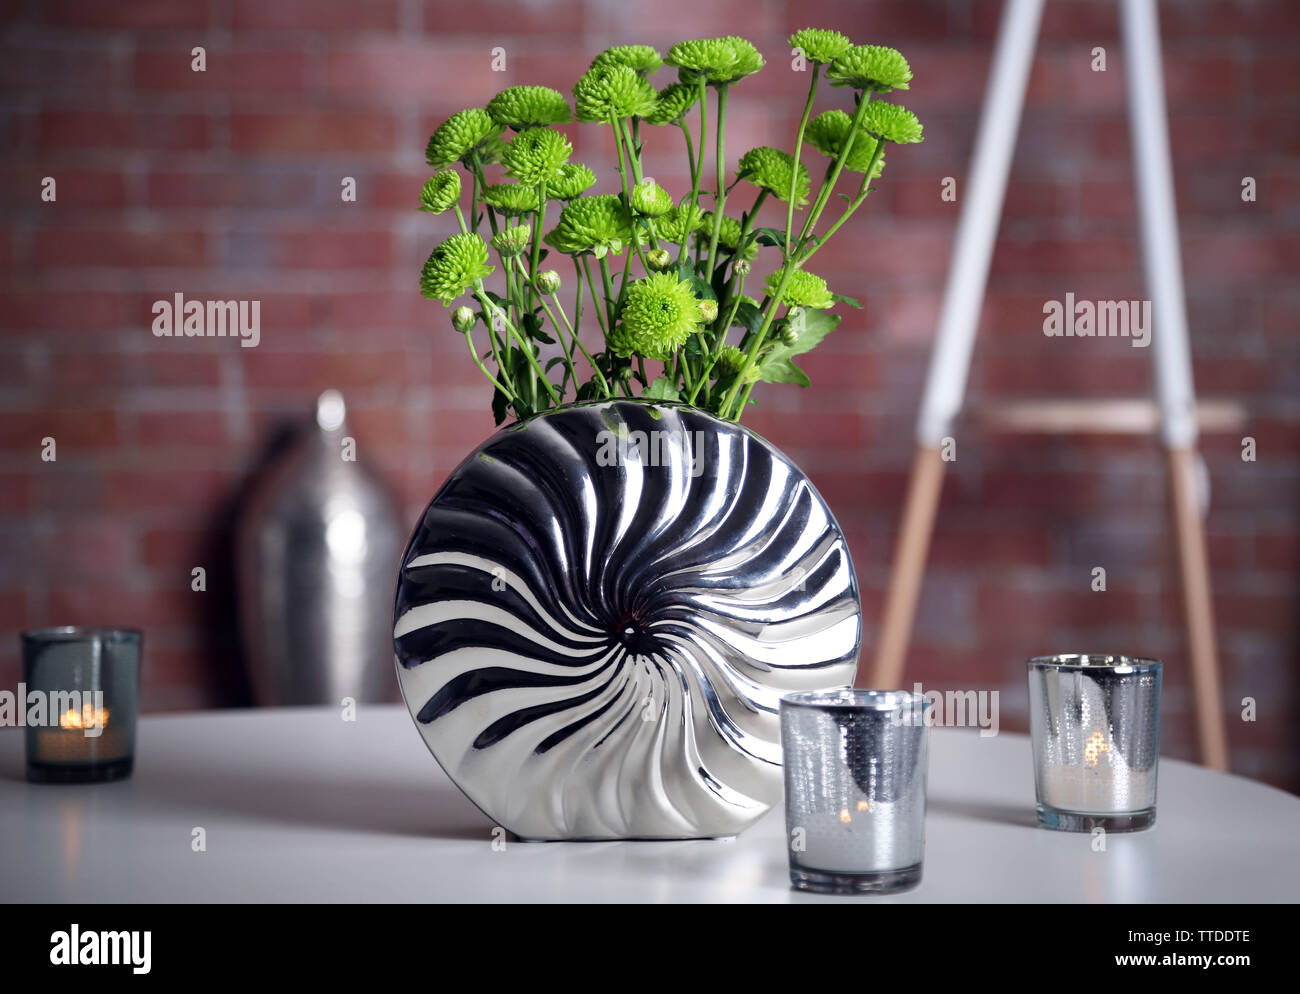 Home decor in a room on a brick wall background - Stock Image